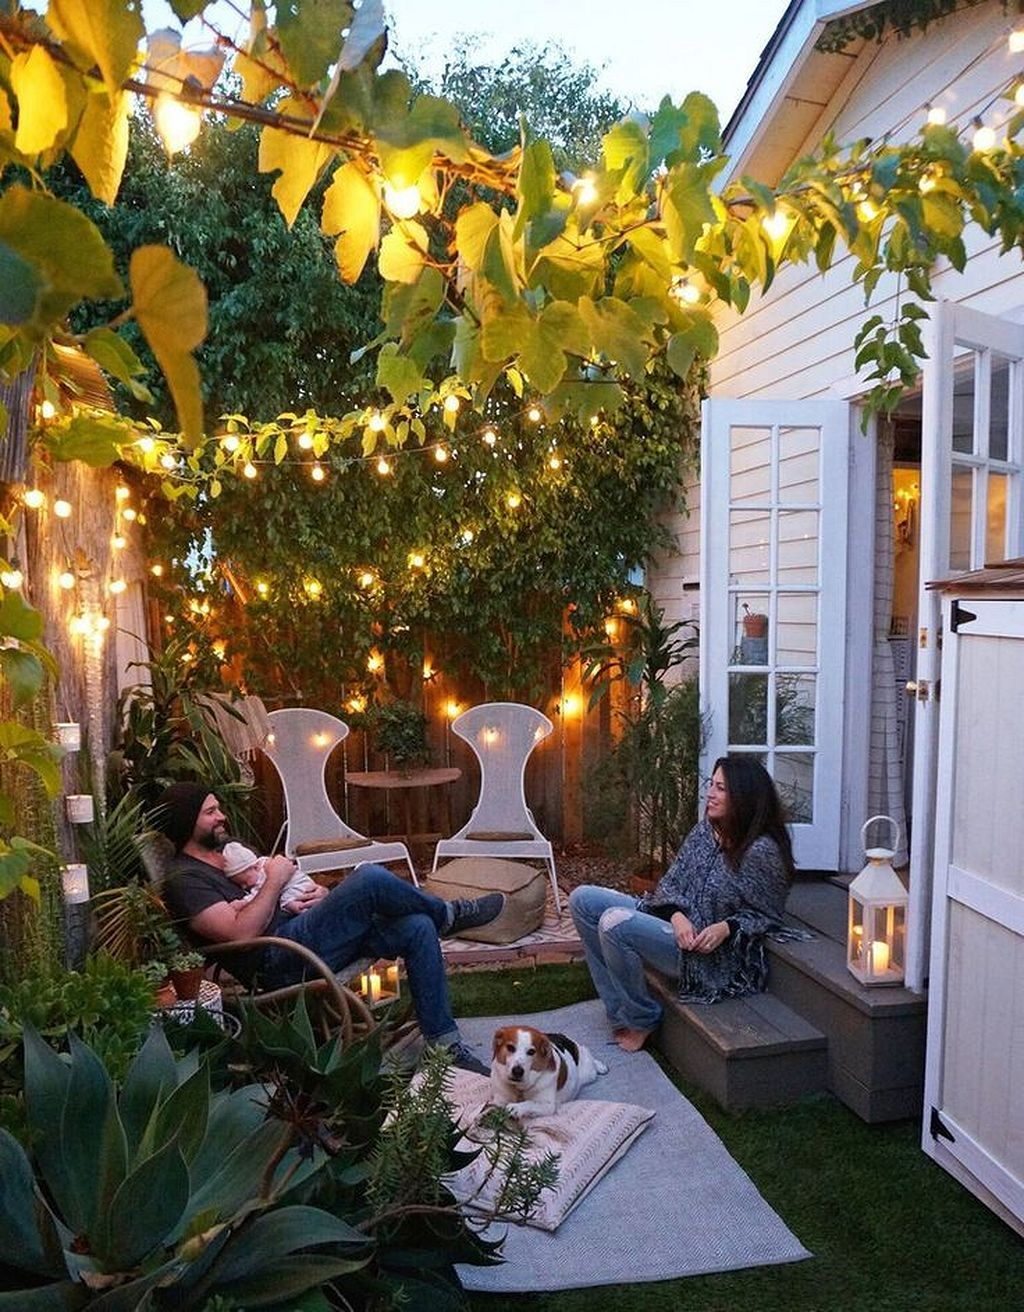 70+ Incredible Outdoor Space Design Ideas | Small spaces, Budgeting ...